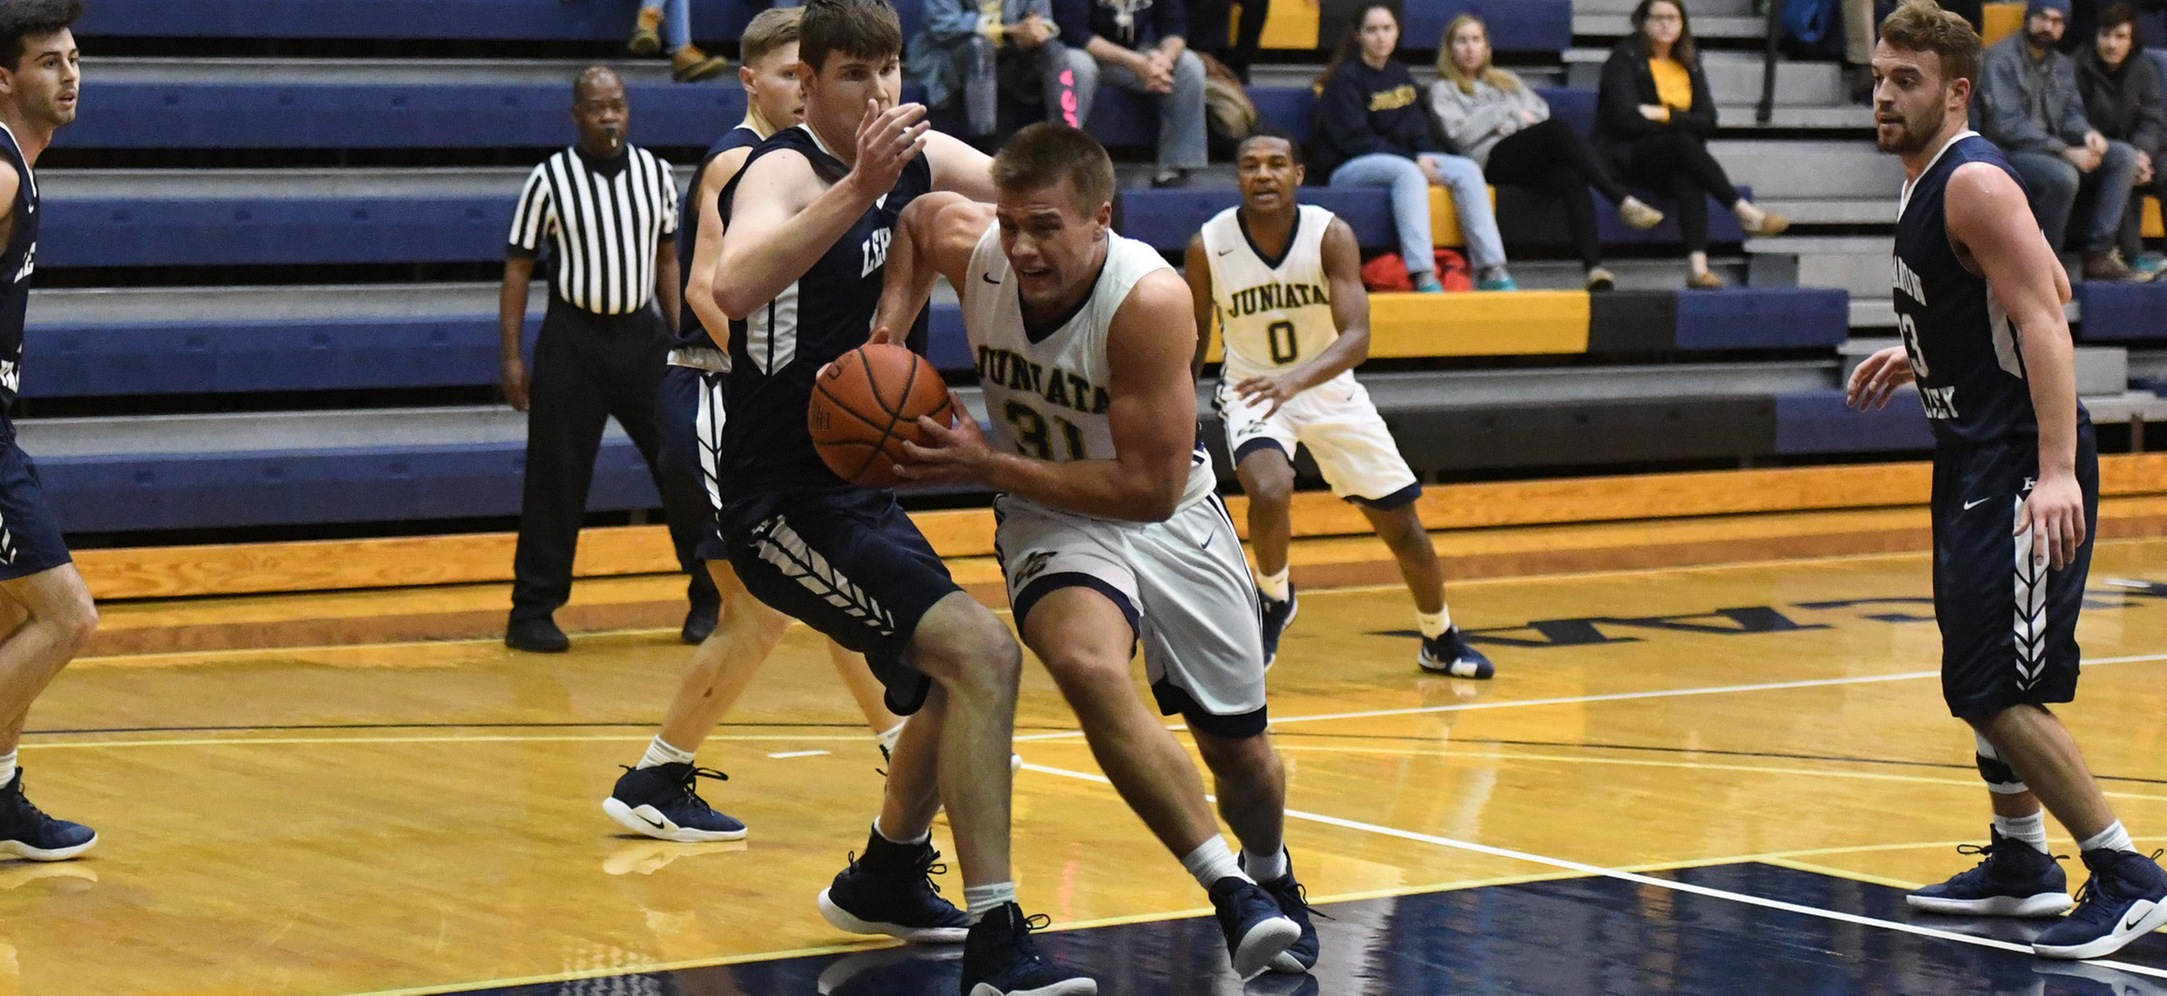 Men's Basketball Loses Tight Contest At Drew